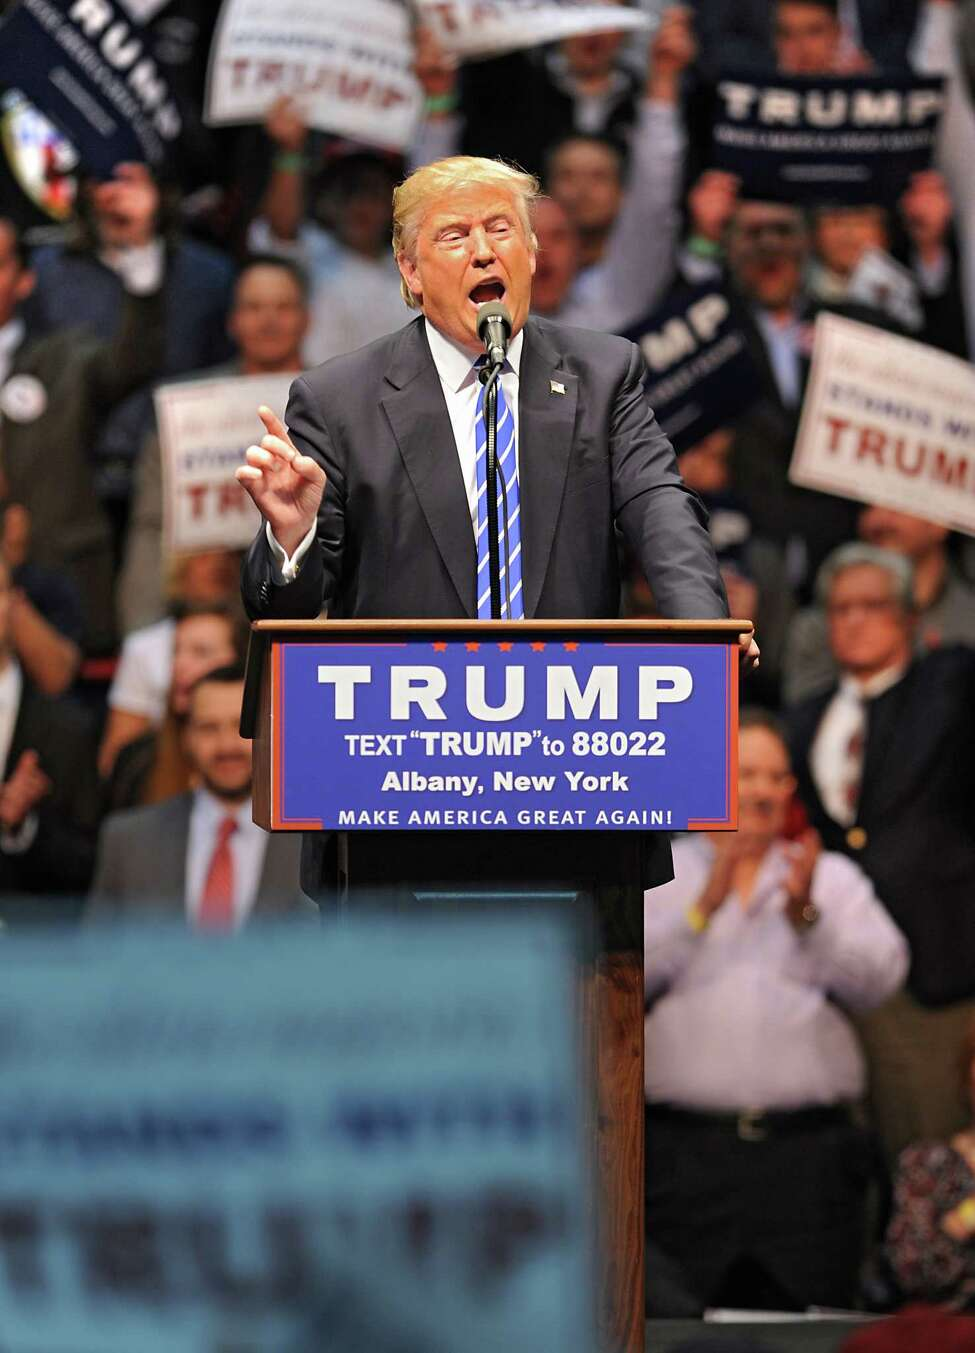 Republican presidential candidate Donald Trump addresses the crowd during a rally at the Times Union Center on Monday, April 11, 2016 in Albany, N.Y. (Lori Van Buren / Times Union)